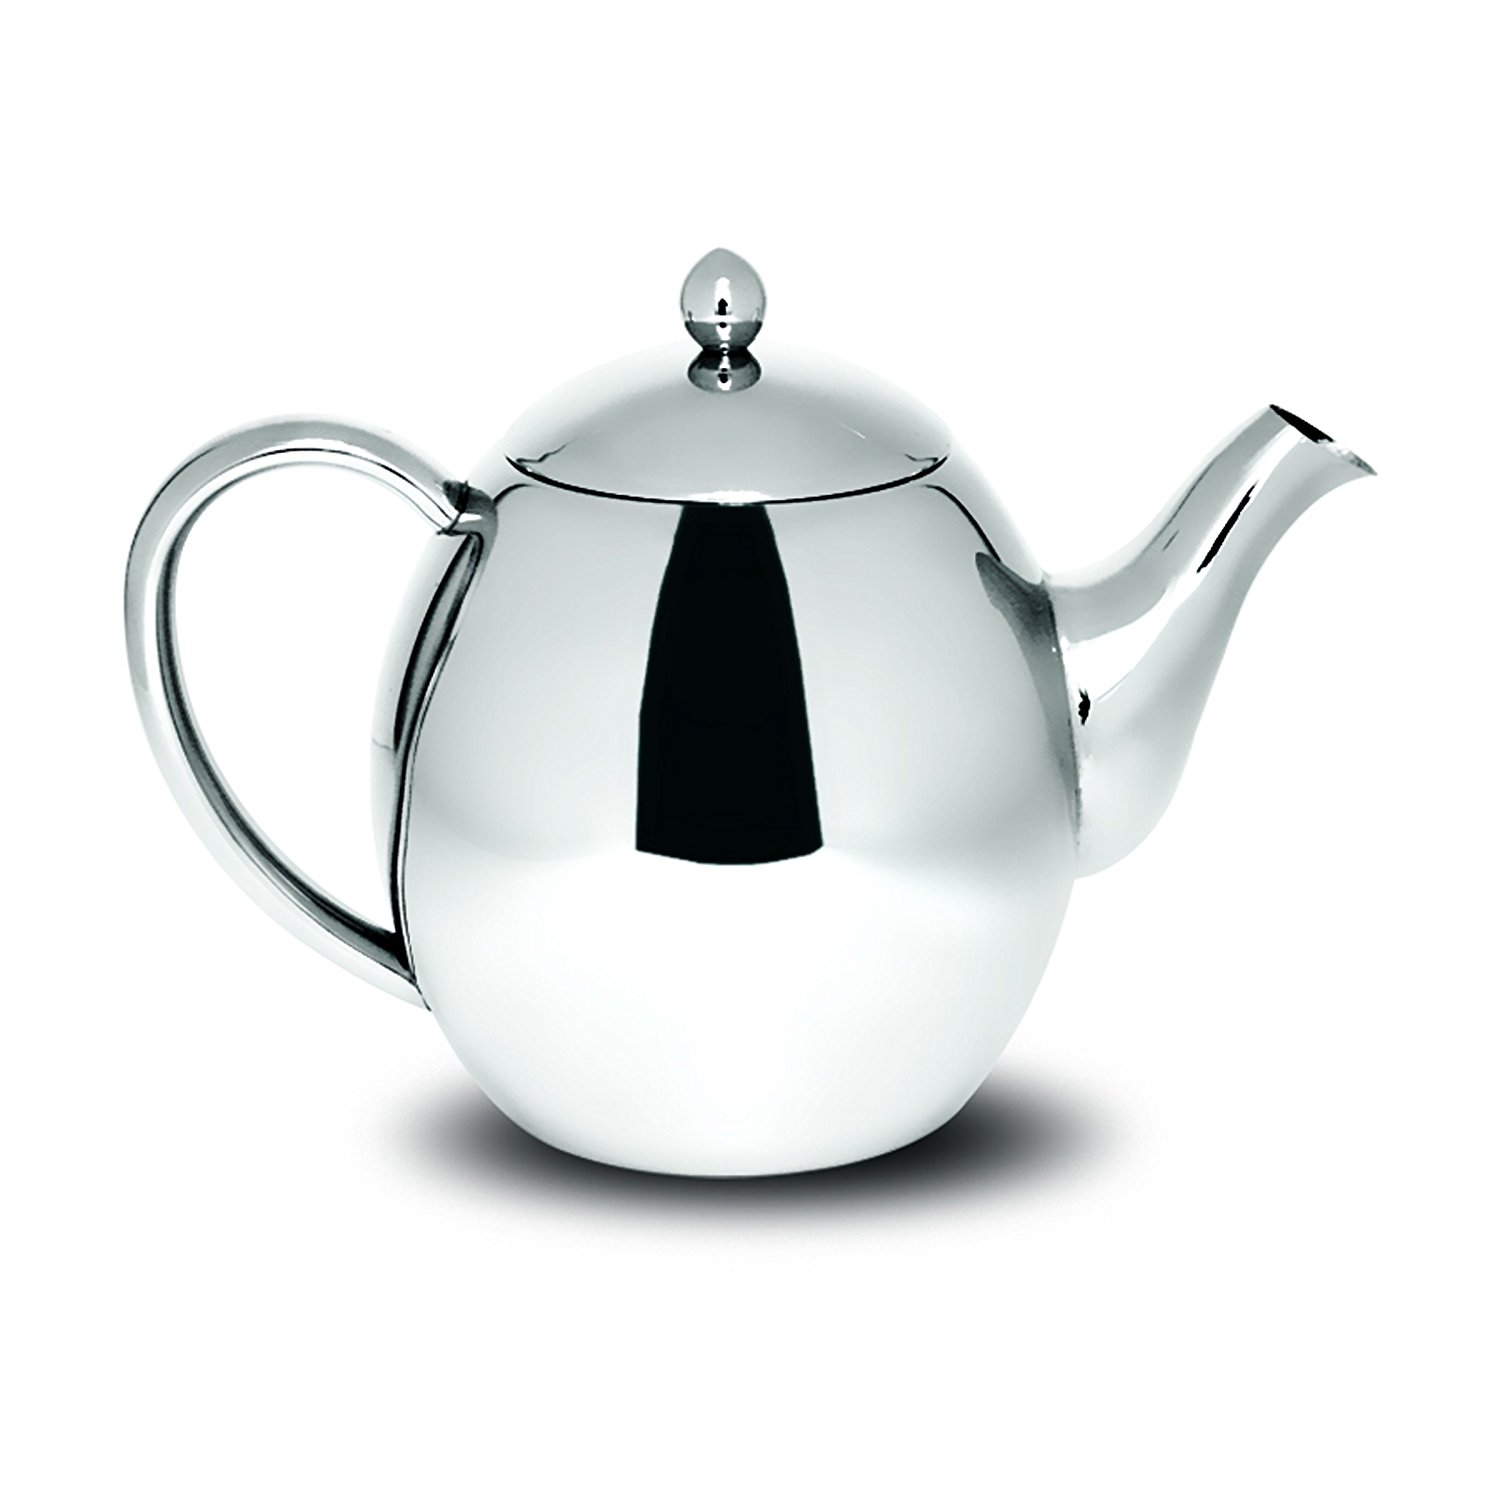 1500x1500 Sabichi Double Wall Stainless Steel Teapot, Silver, 1200 Ml